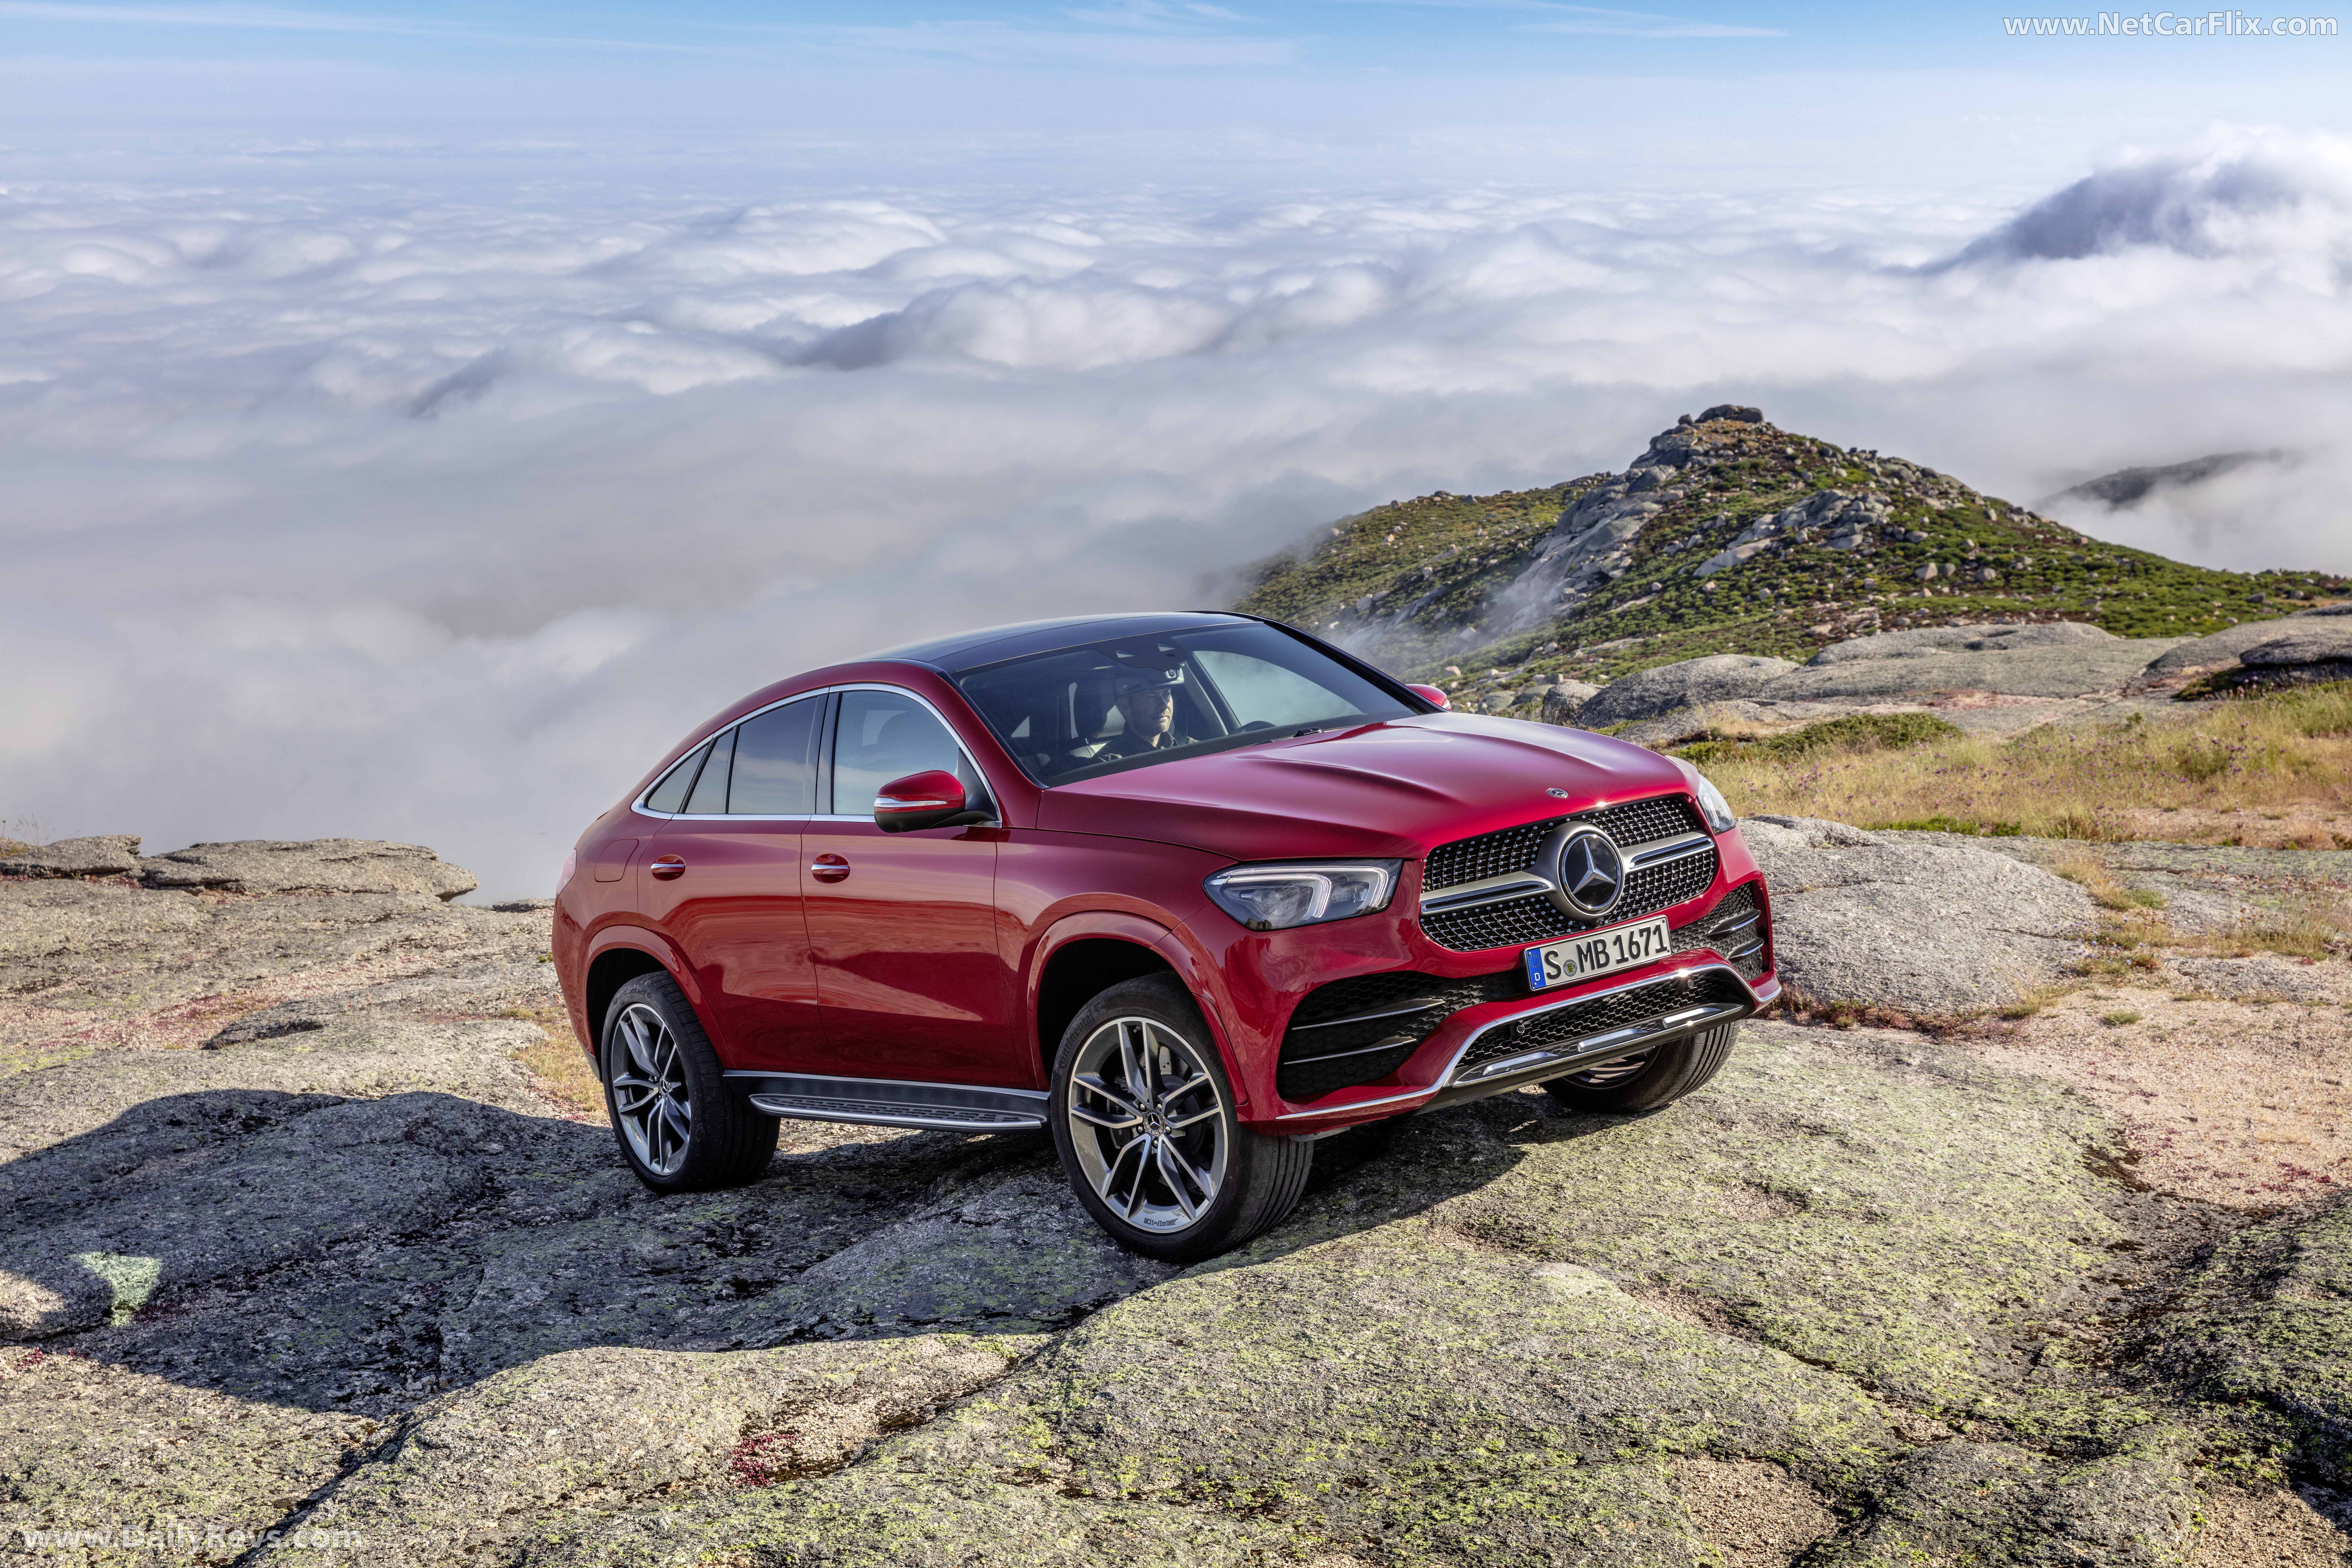 2020 Mercedes-Benz GLE Coupe - HD Pictures, Videos, Specs ...